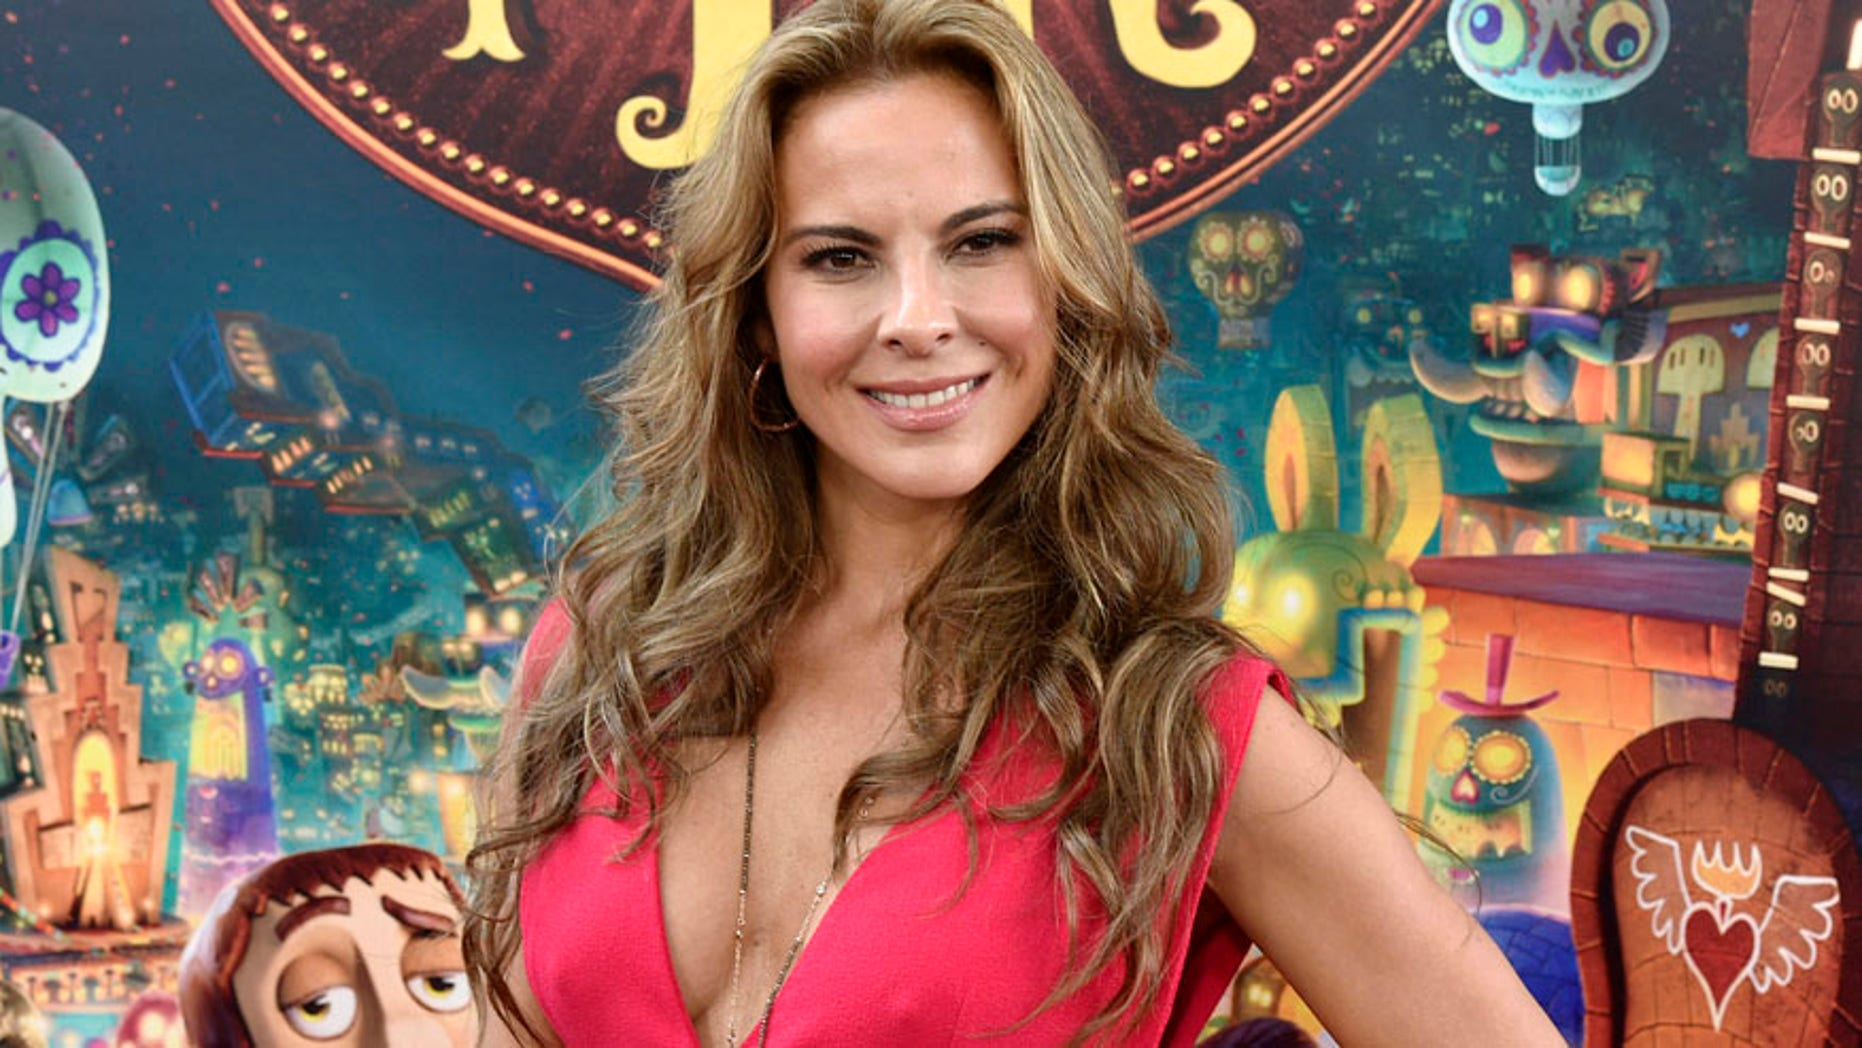 """Cast member Kate del Castillo poses during the premiere of the film """"Book of Life"""" in Los Angeles, California October 12, 2014. REUTERS/Kevork Djansezian  (UNITED STATES - Tags: ENTERTAINMENT) - RTR49W8Z"""